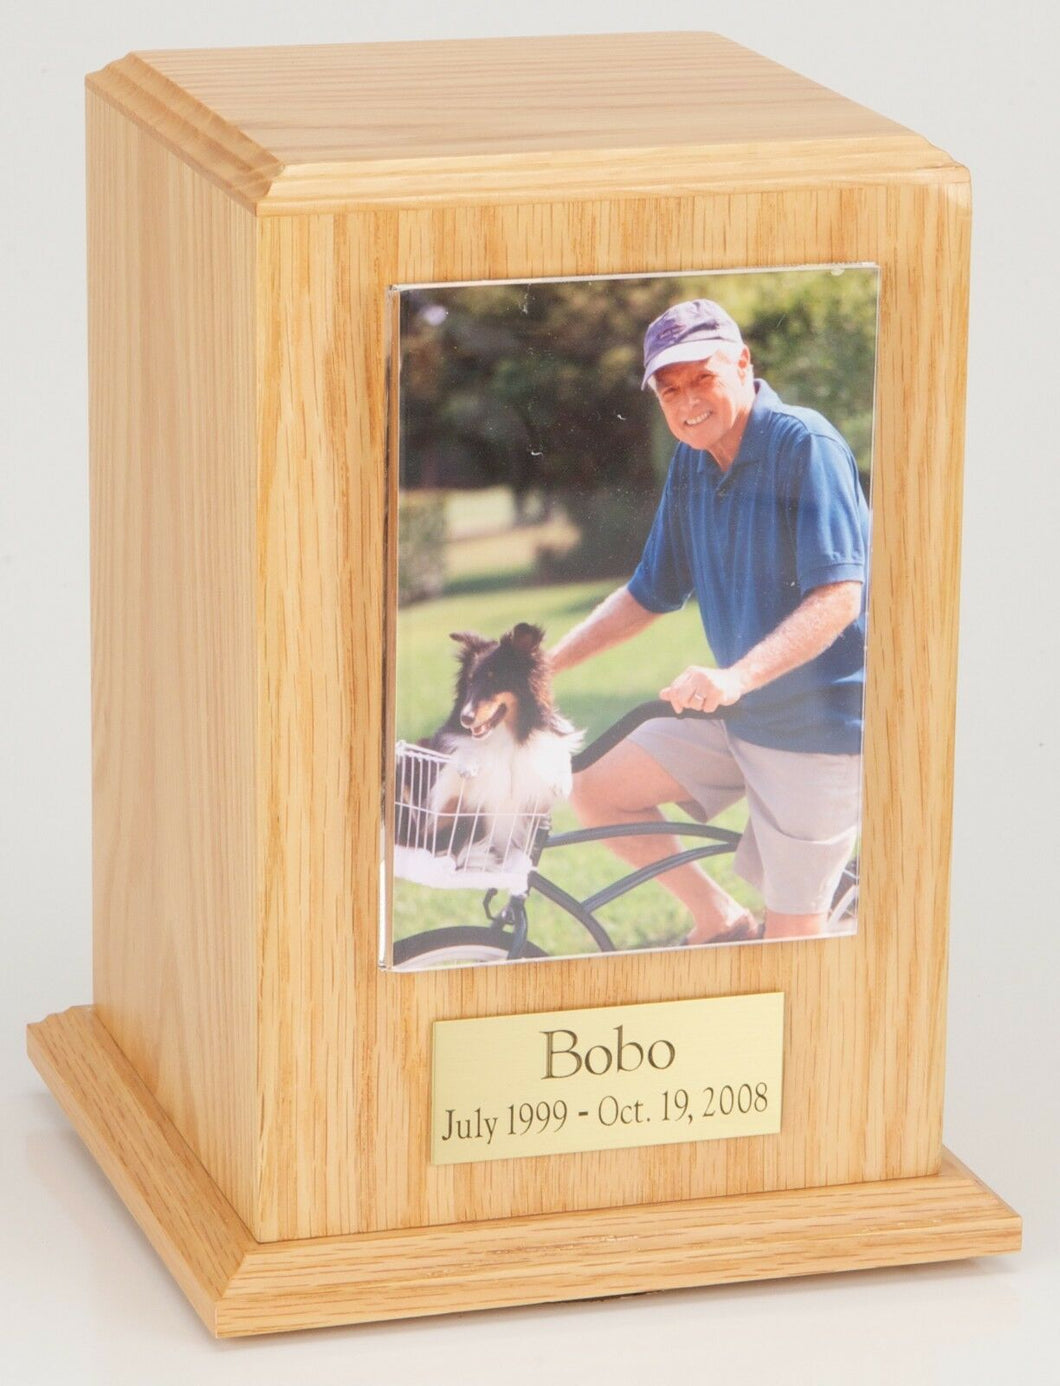 Large 110 Cubic Ins Oak Pet Tower Photo Urn for Ashes w/Engravable Nameplate